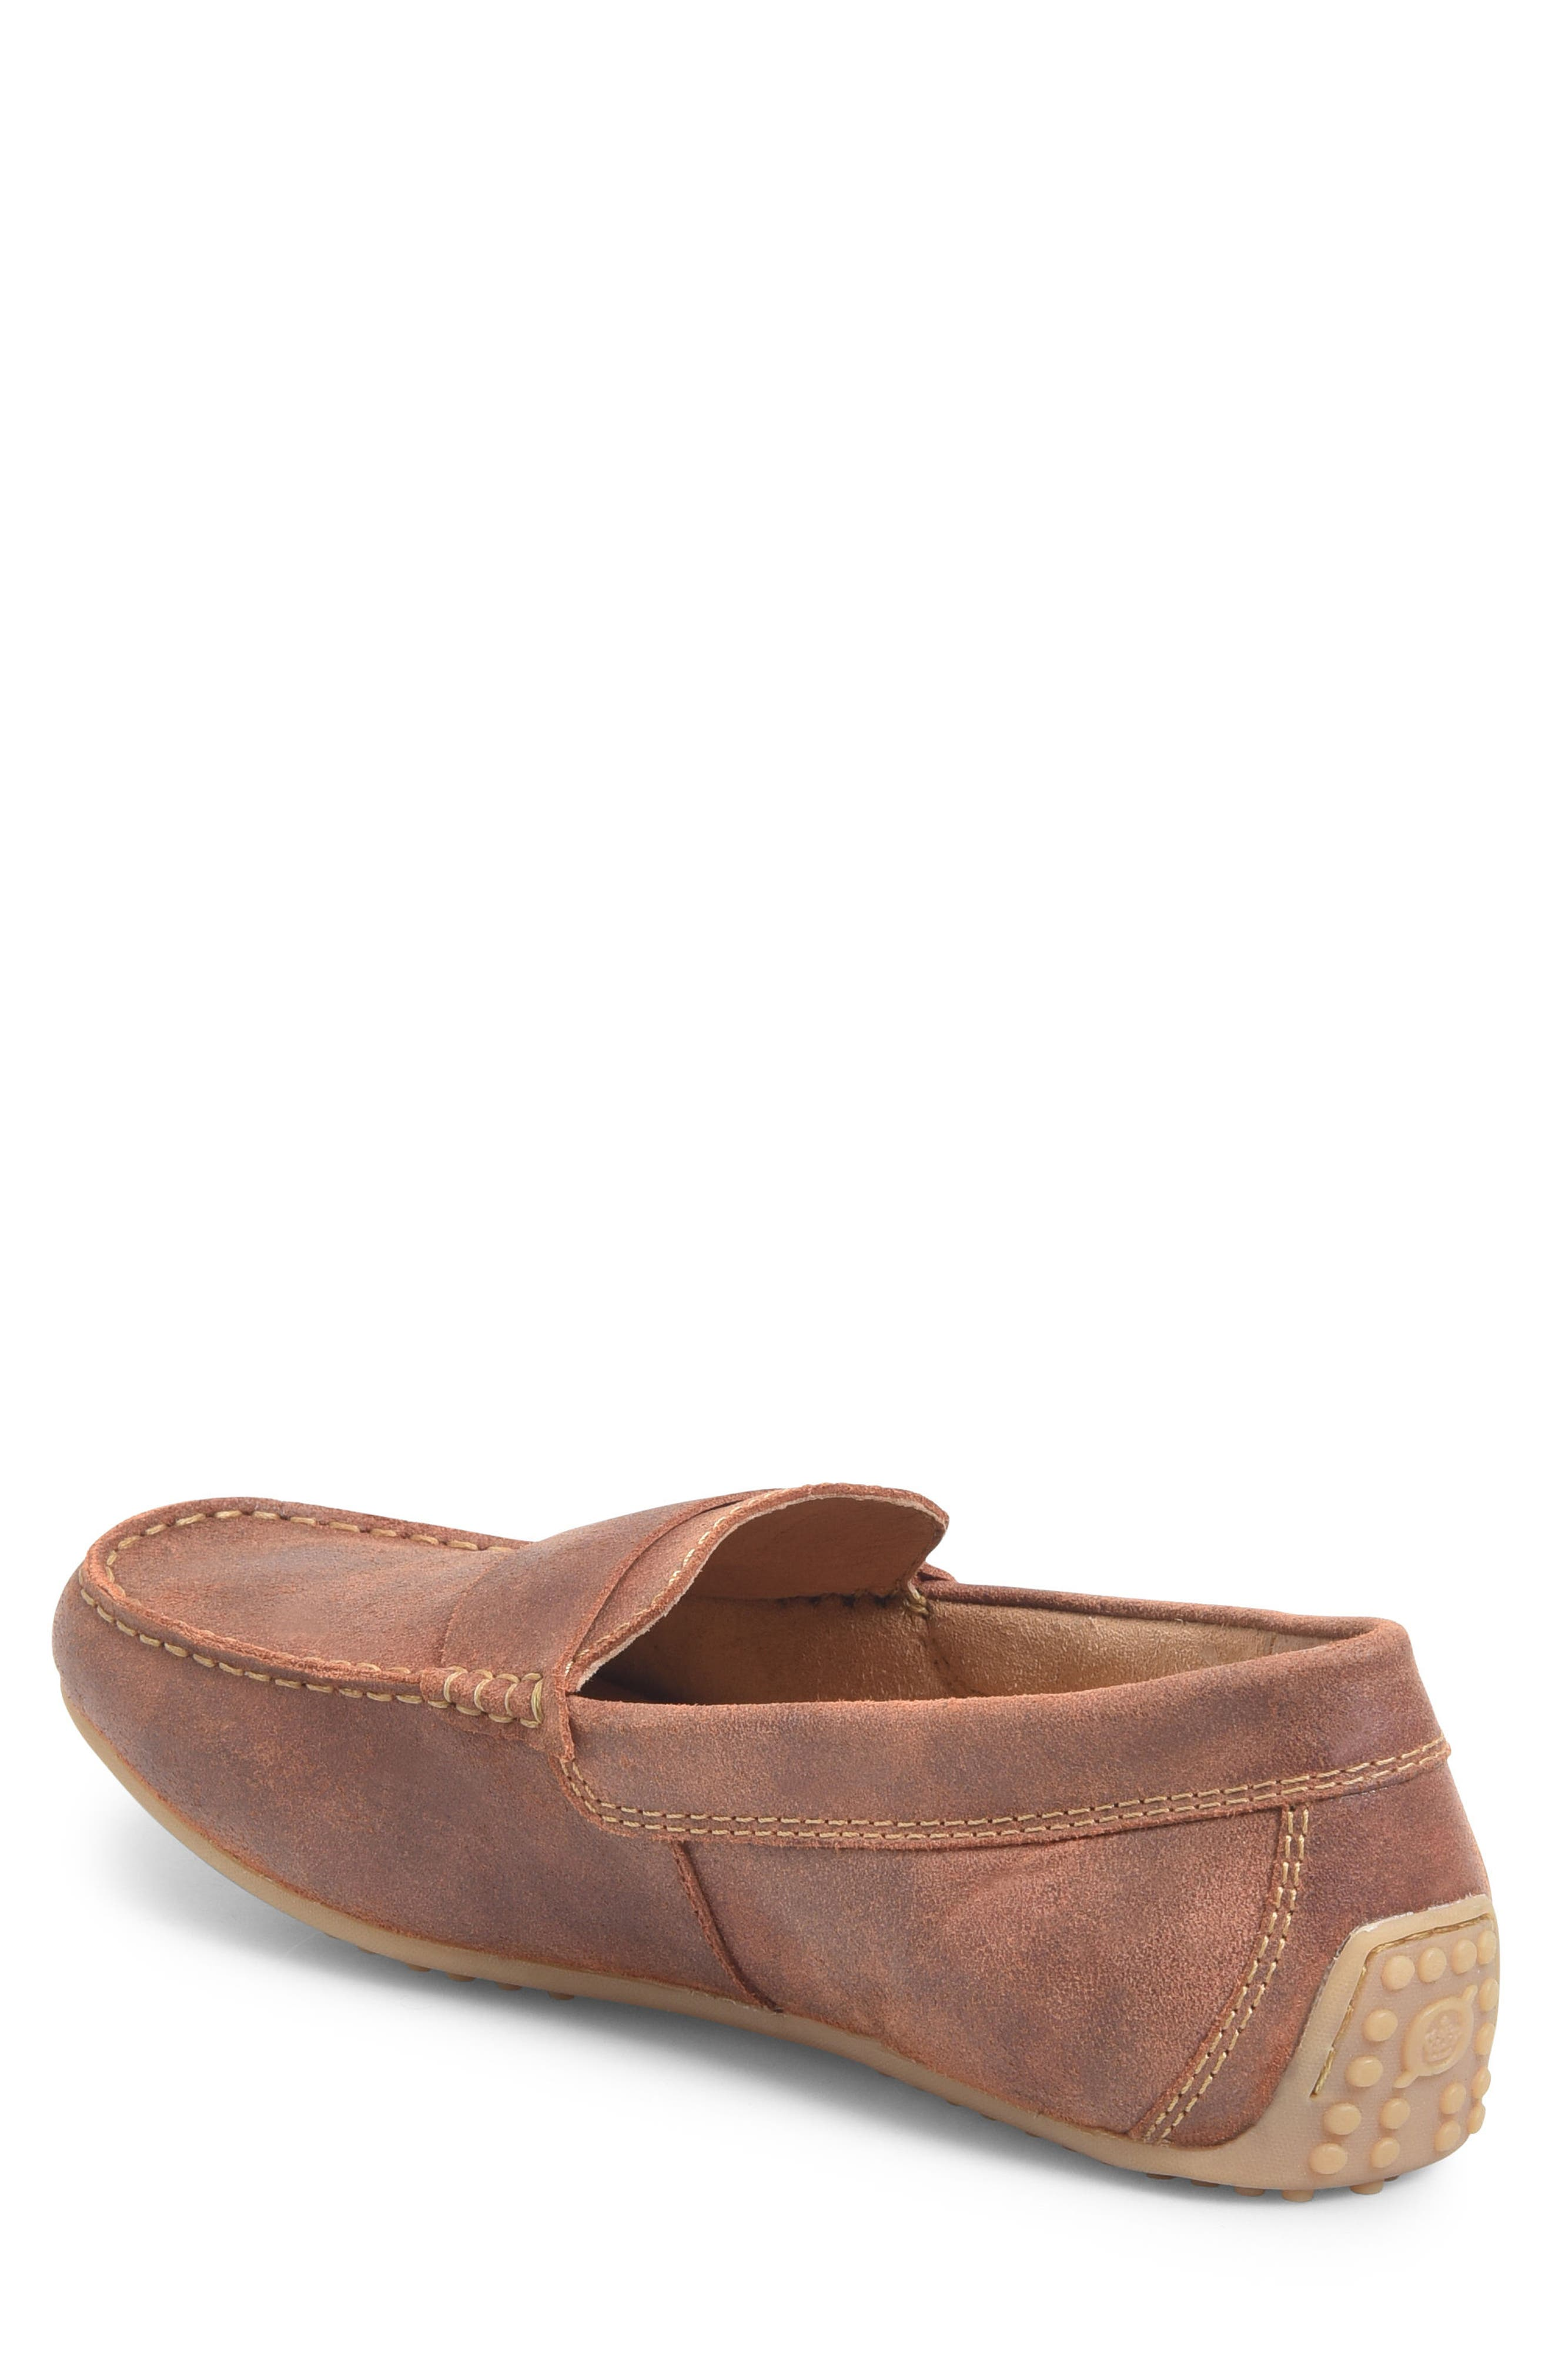 Ratner Driving Loafer,                             Alternate thumbnail 2, color,                             Rust Leather